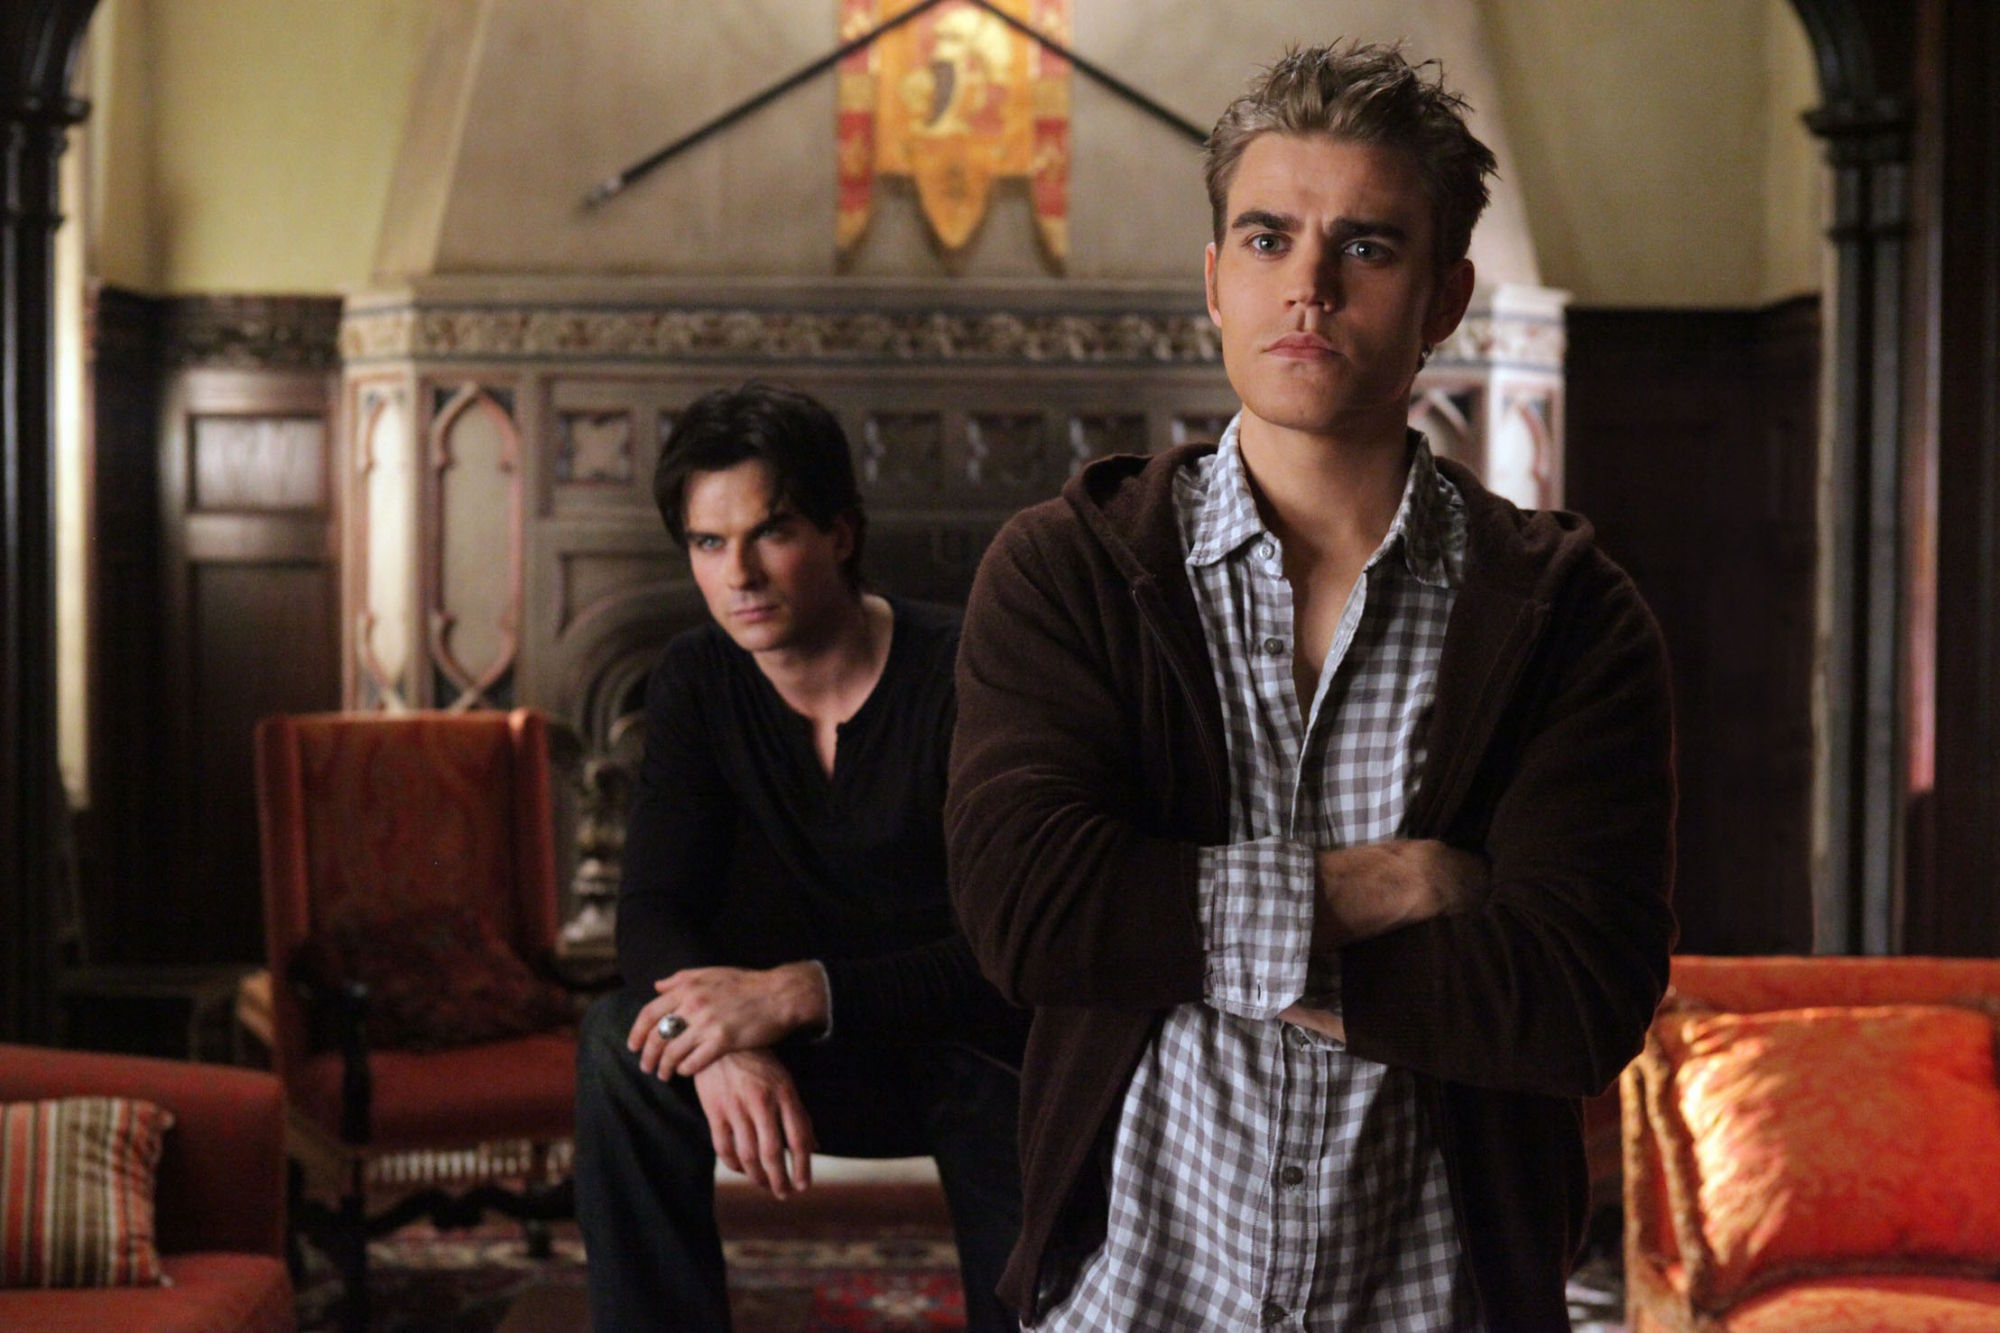 http://images4.fanpop.com/image/photos/16200000/2-07-Masquerade-the-vampire-diaries-16220669-2000-1333.jpg